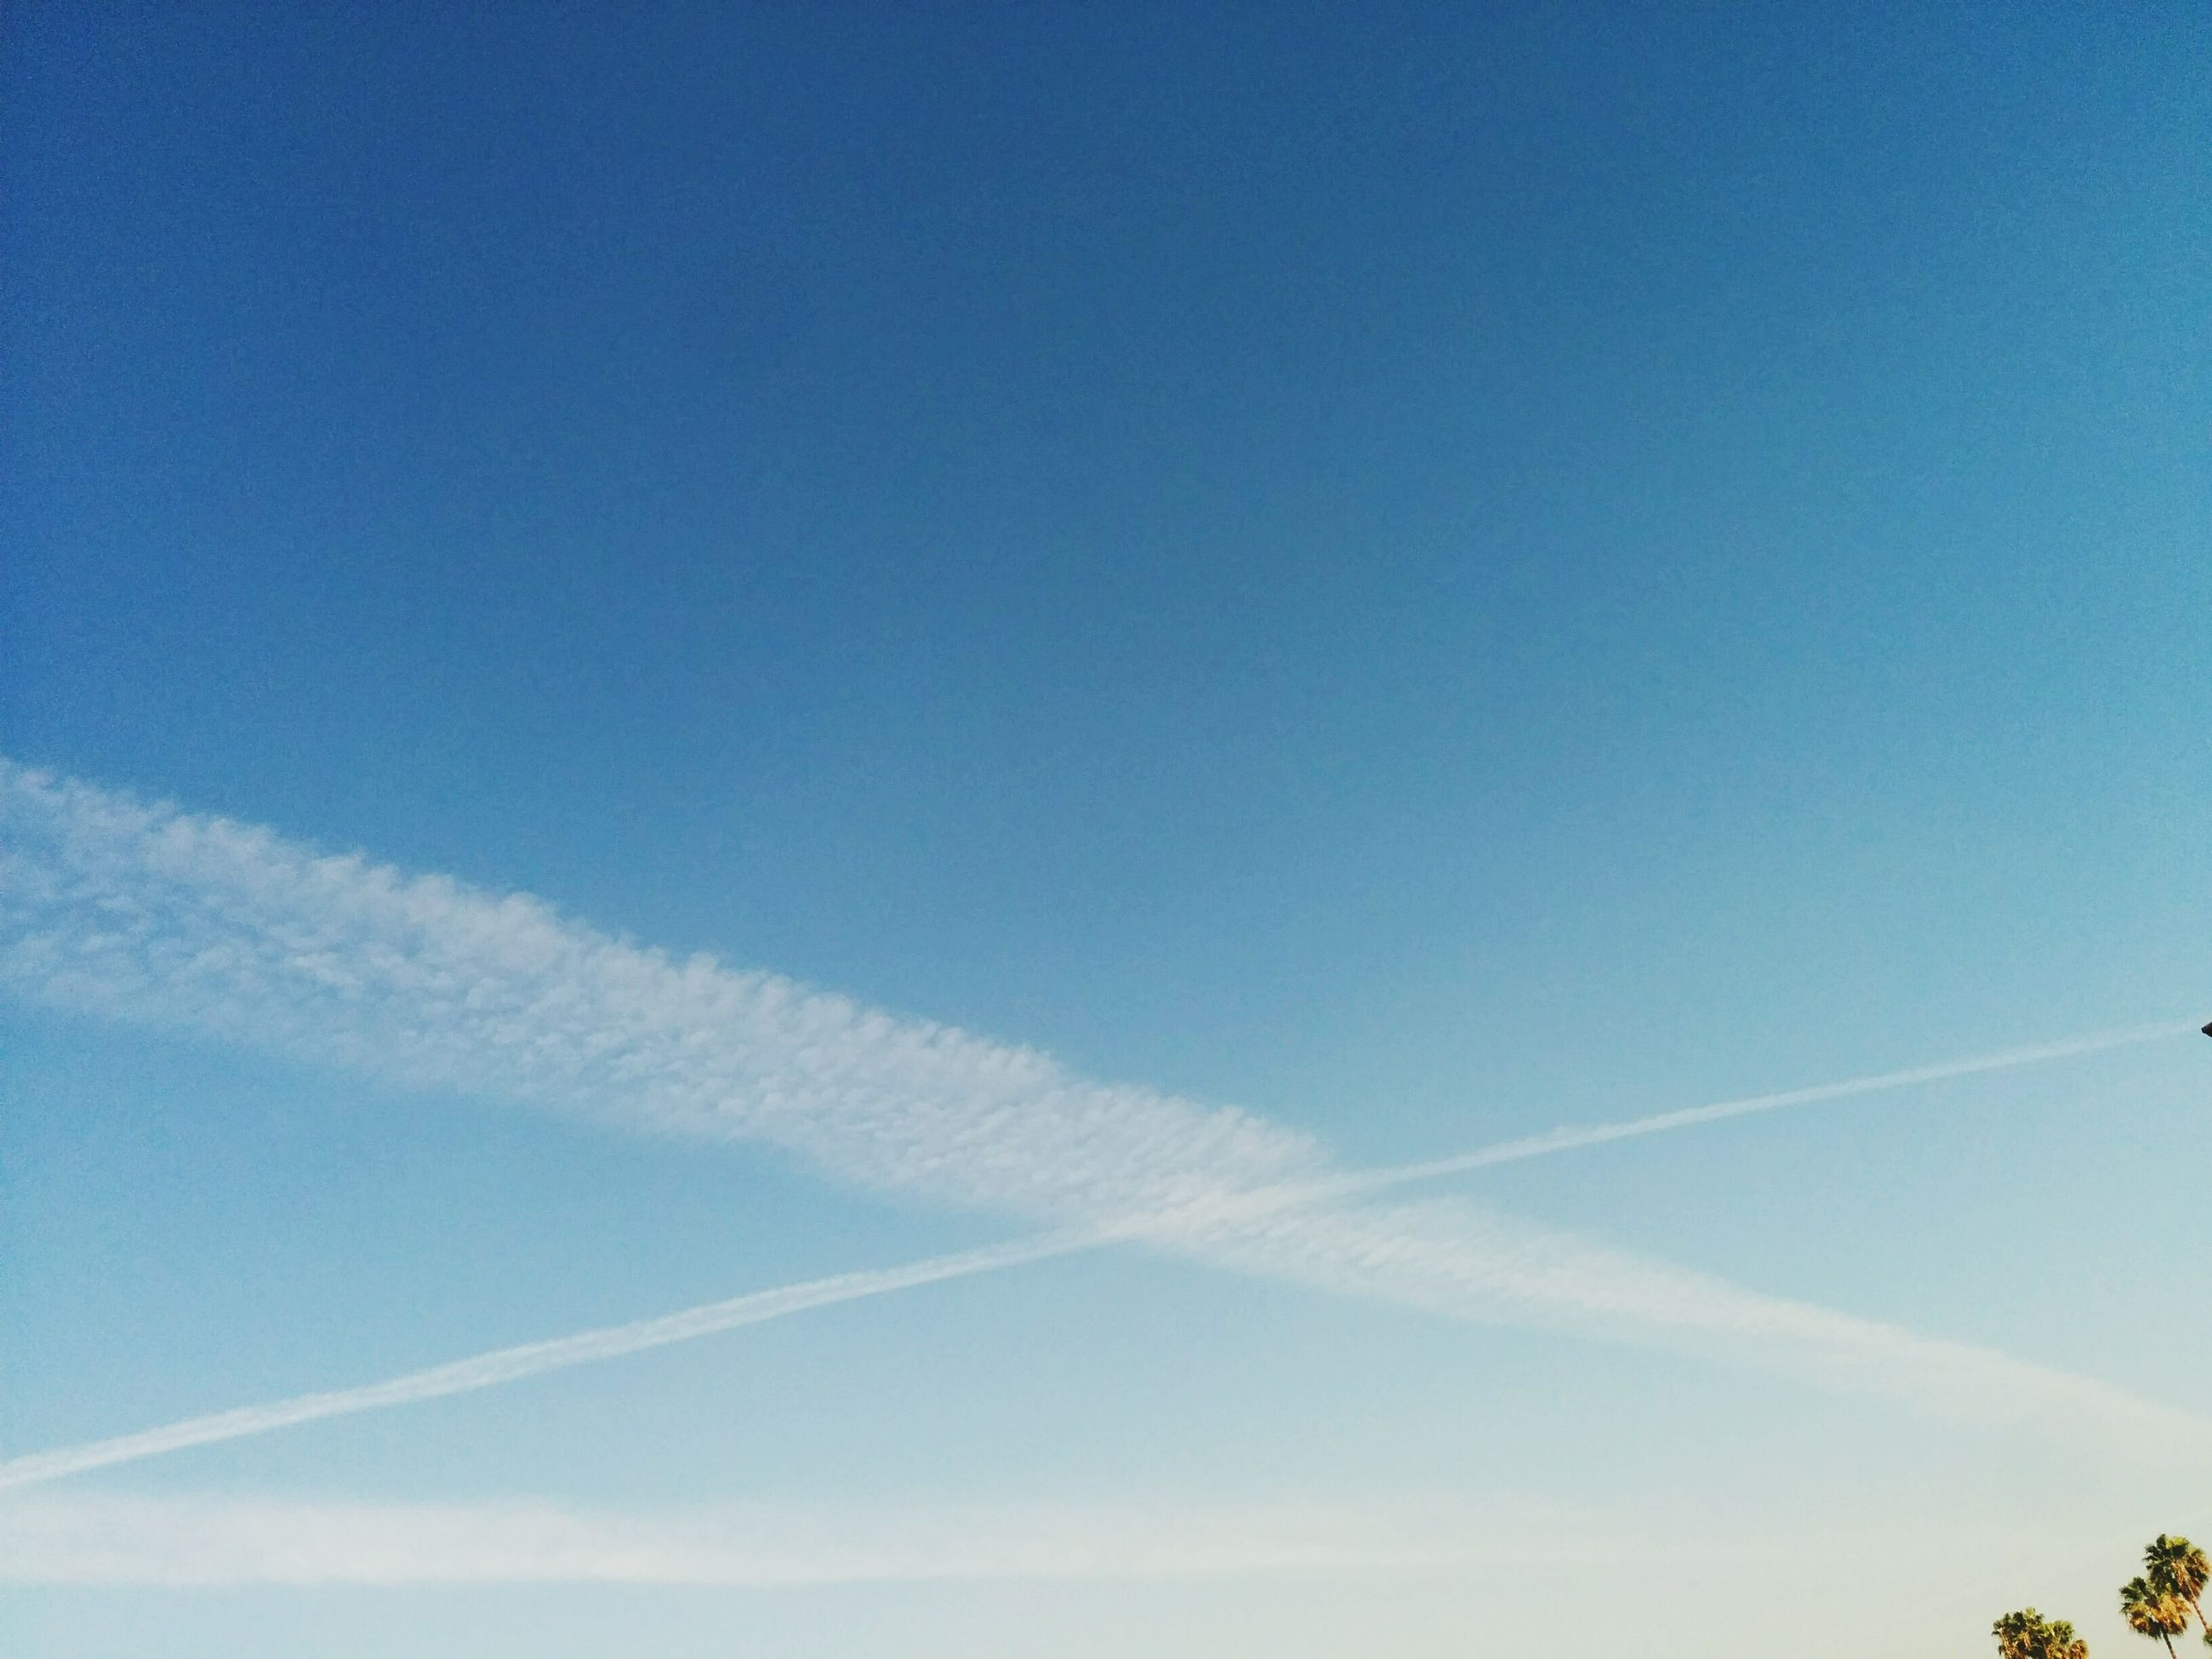 blue, low angle view, vapor trail, sky, copy space, beauty in nature, nature, scenics, tranquility, clear sky, outdoors, day, tranquil scene, no people, cloud - sky, sky only, cloud, high section, idyllic, sunlight